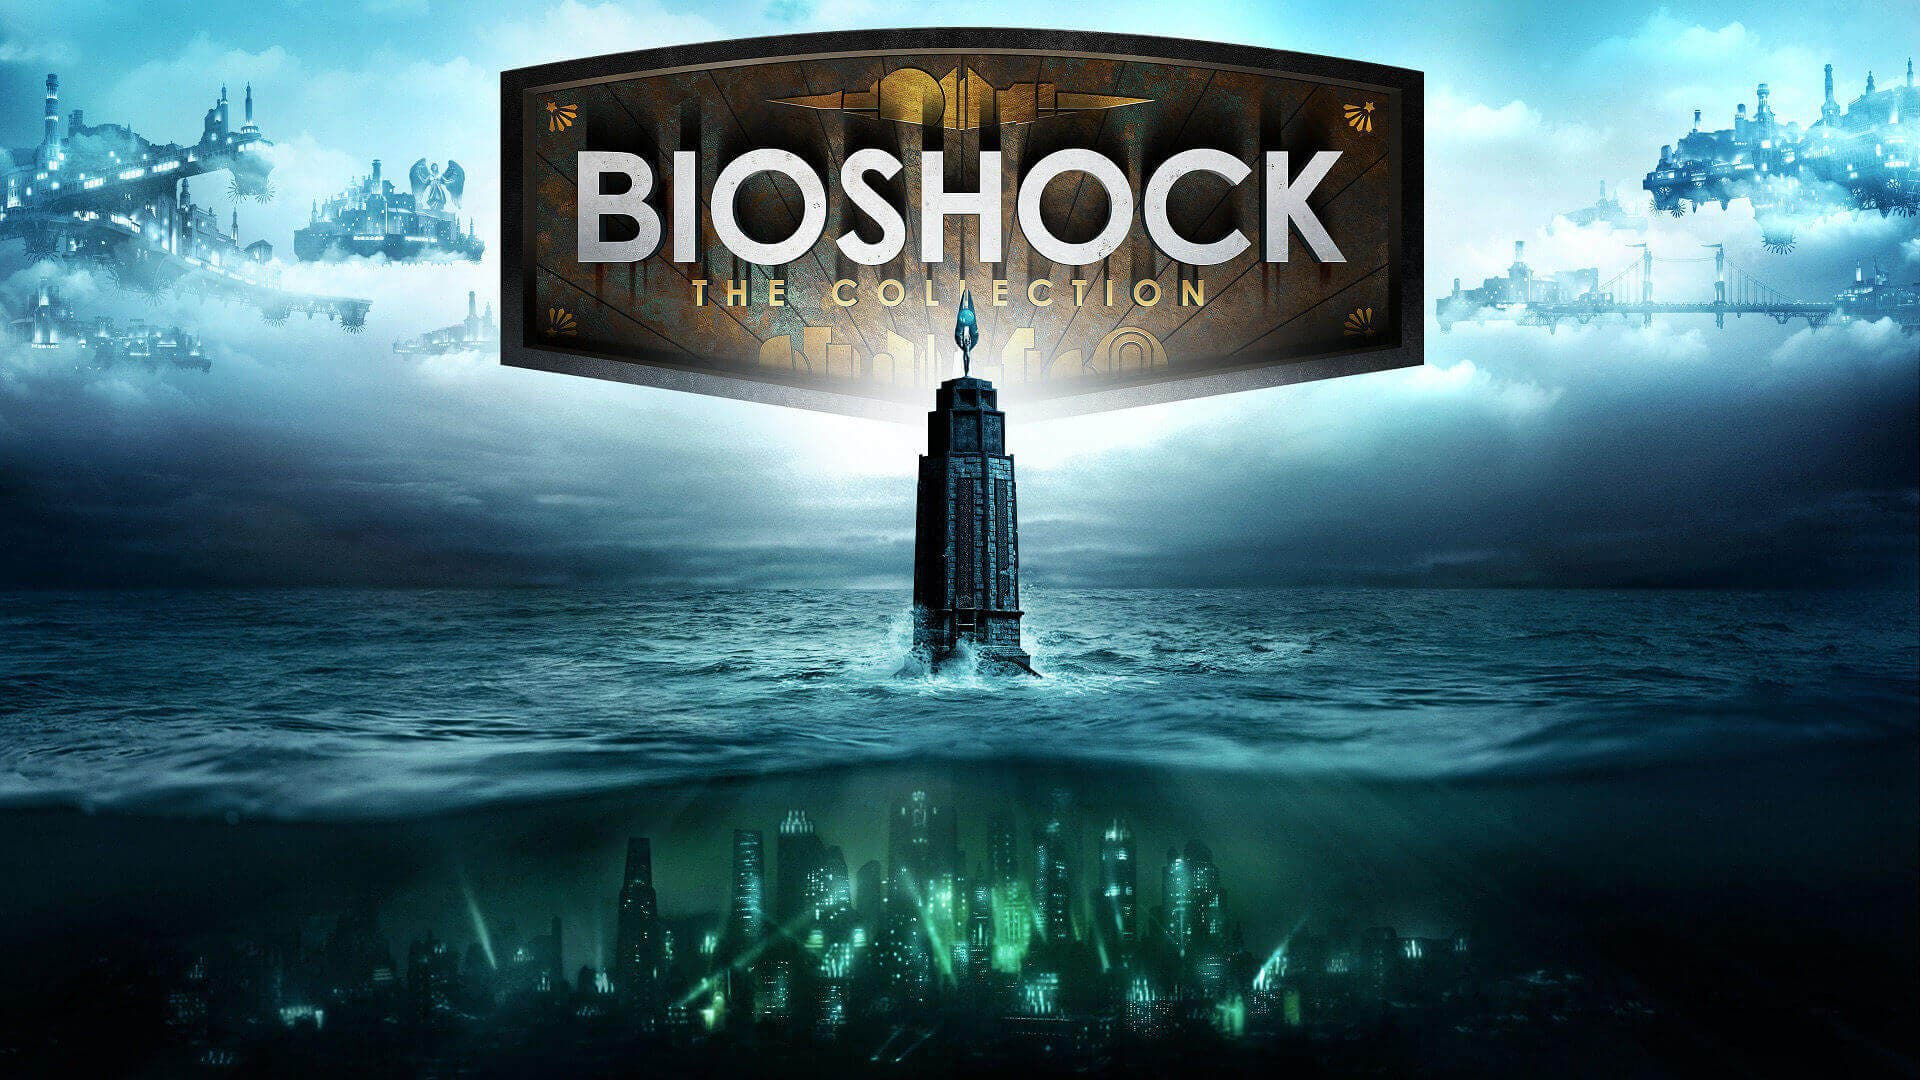 A Digital Foundry le decepciona el parche de Bioshock The Collection para Xbox One X 6